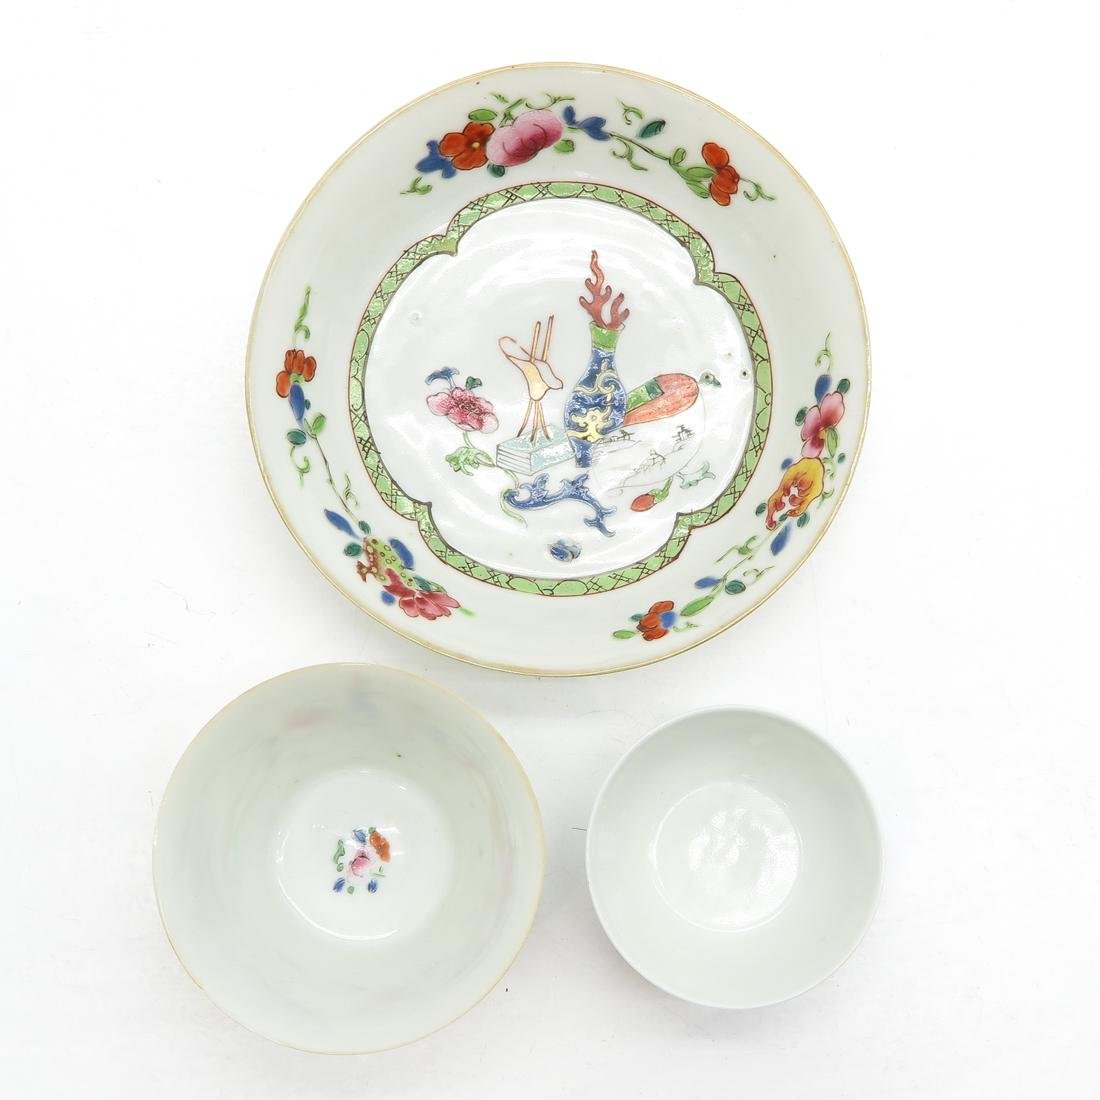 Cups and Saucer - 5